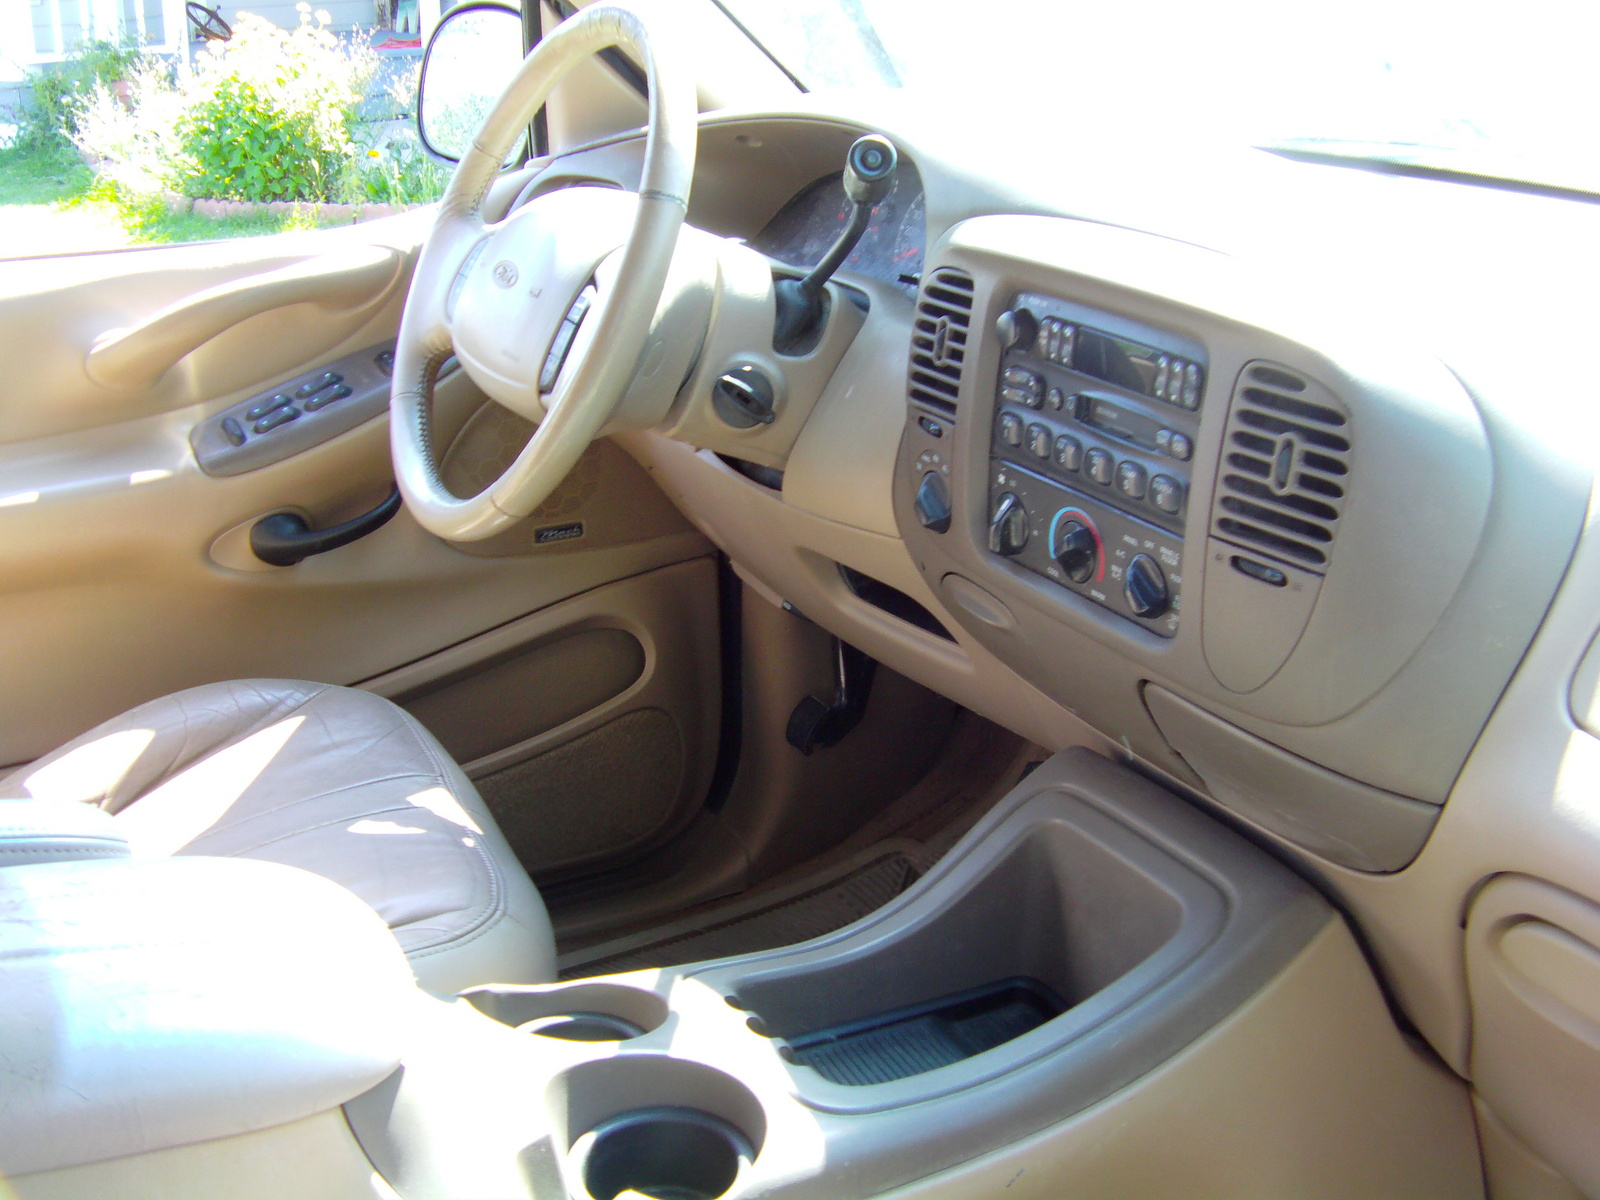 1998 Ford Expedition Interior Pictures Cargurus